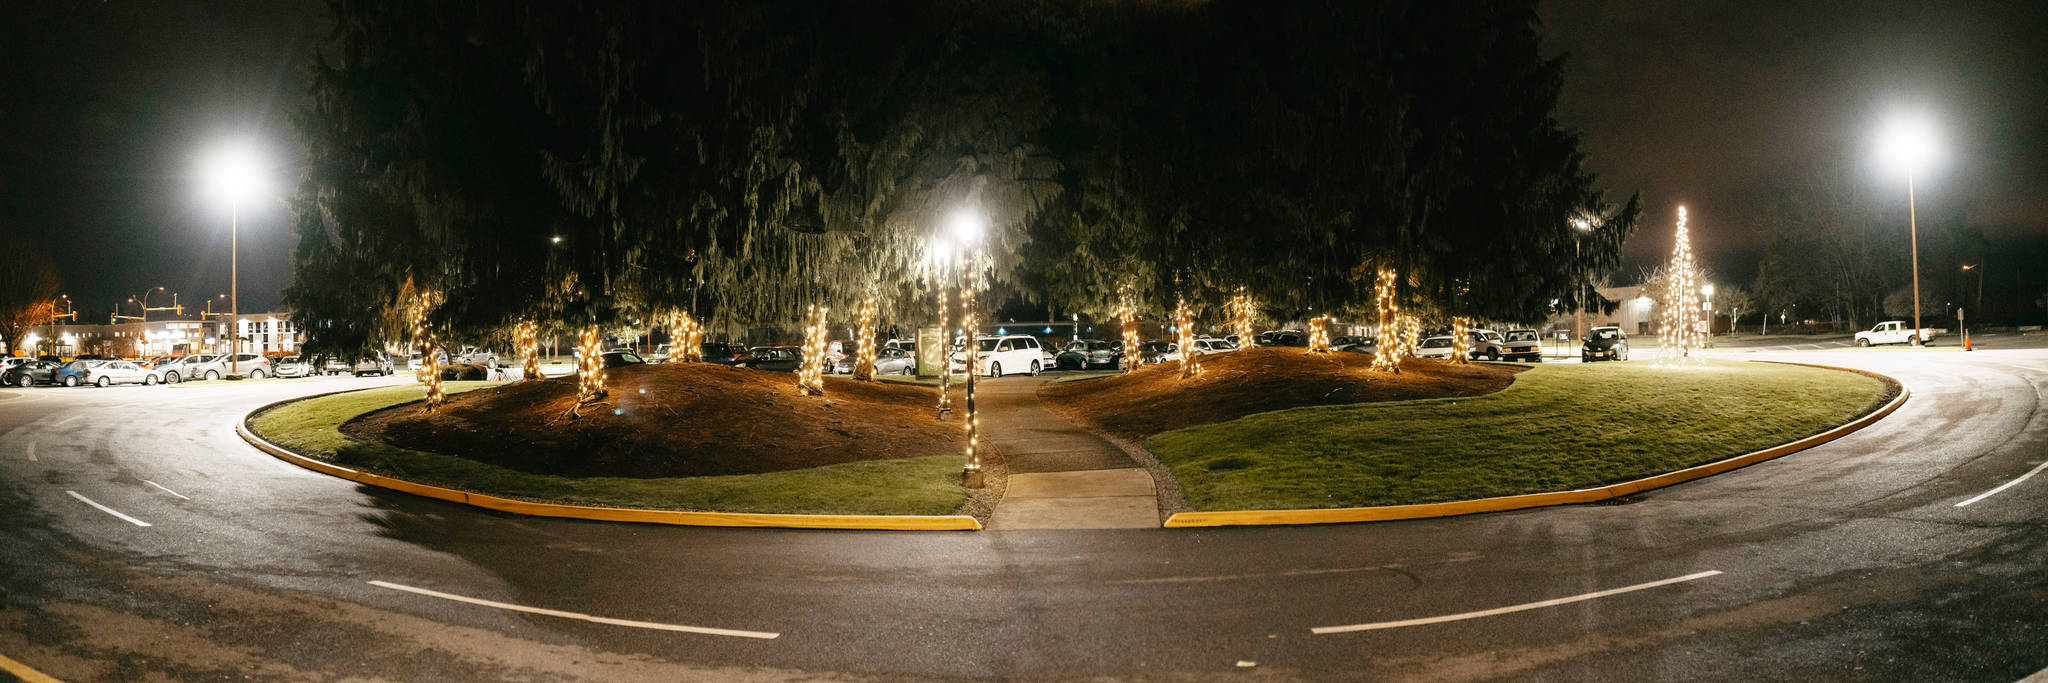 The self-directed event celebrating the Christmas story and its cherished message of hope leaves the residents of Langley with a Christmas gift.